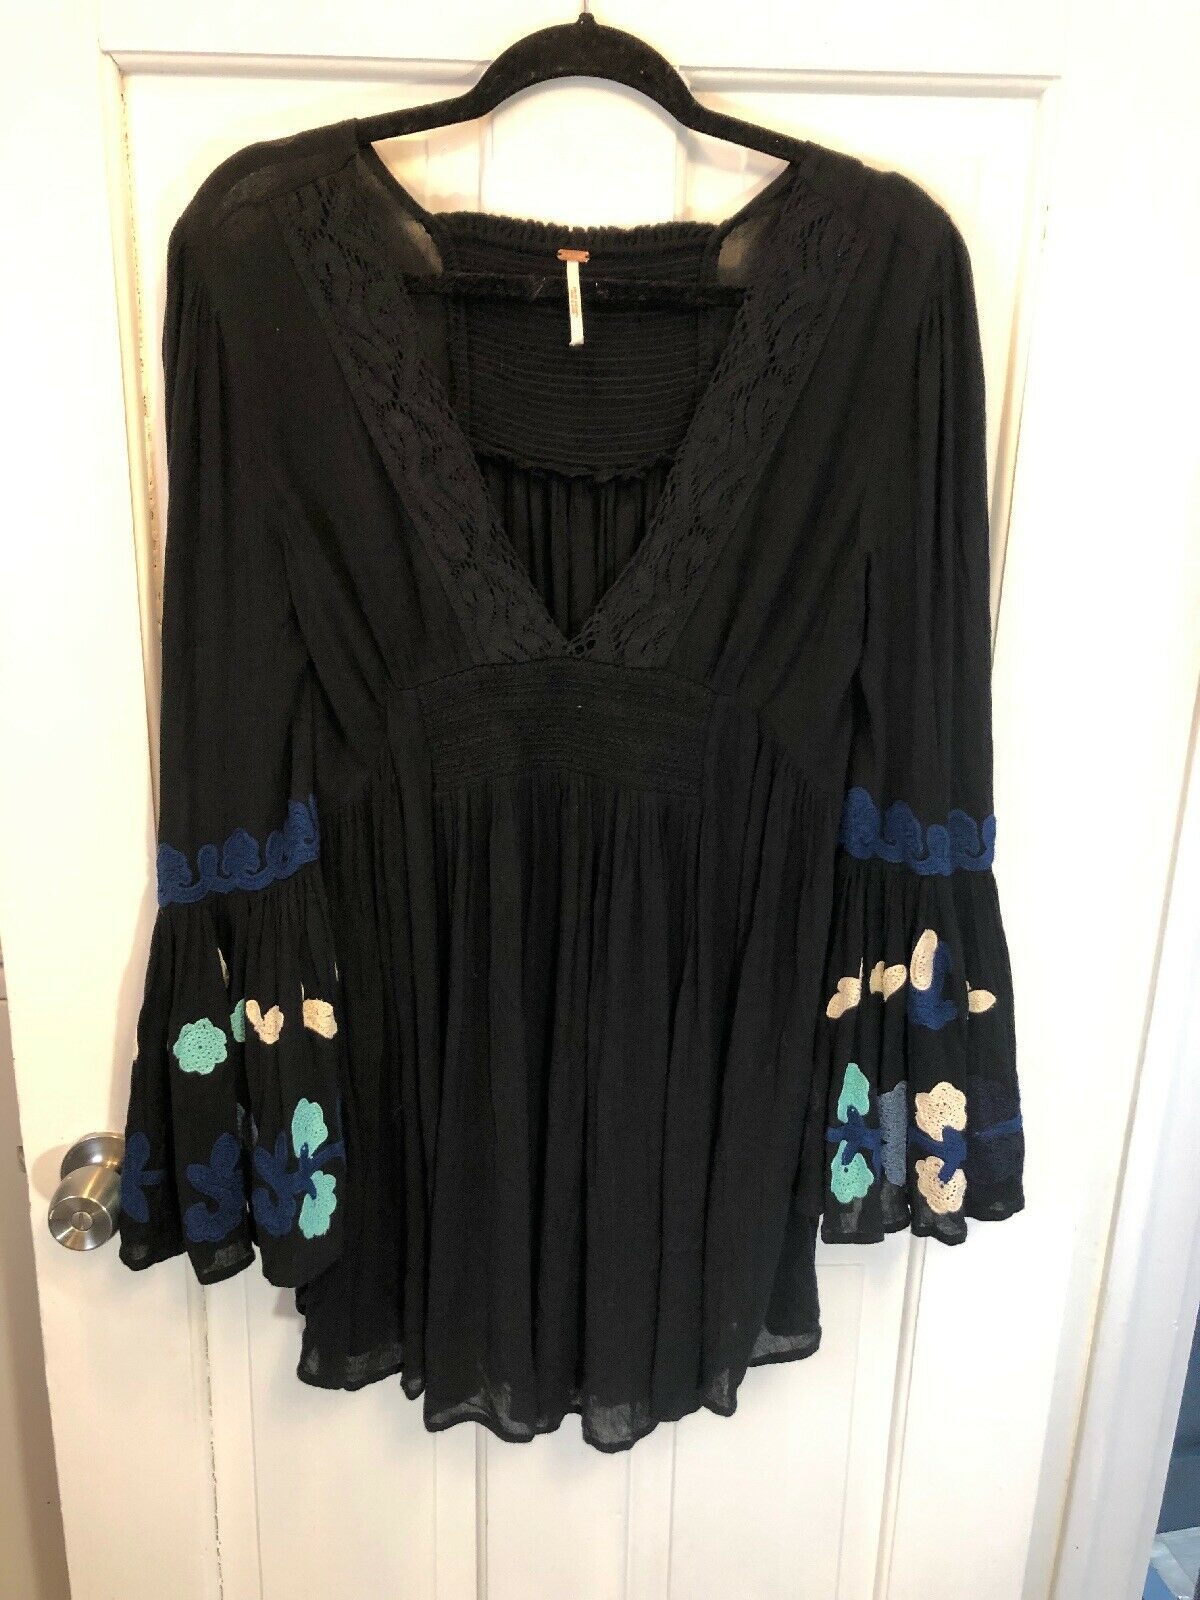 8. New Free People schwarz Bell Sleeve V Neck Tuniic Embroiderot S